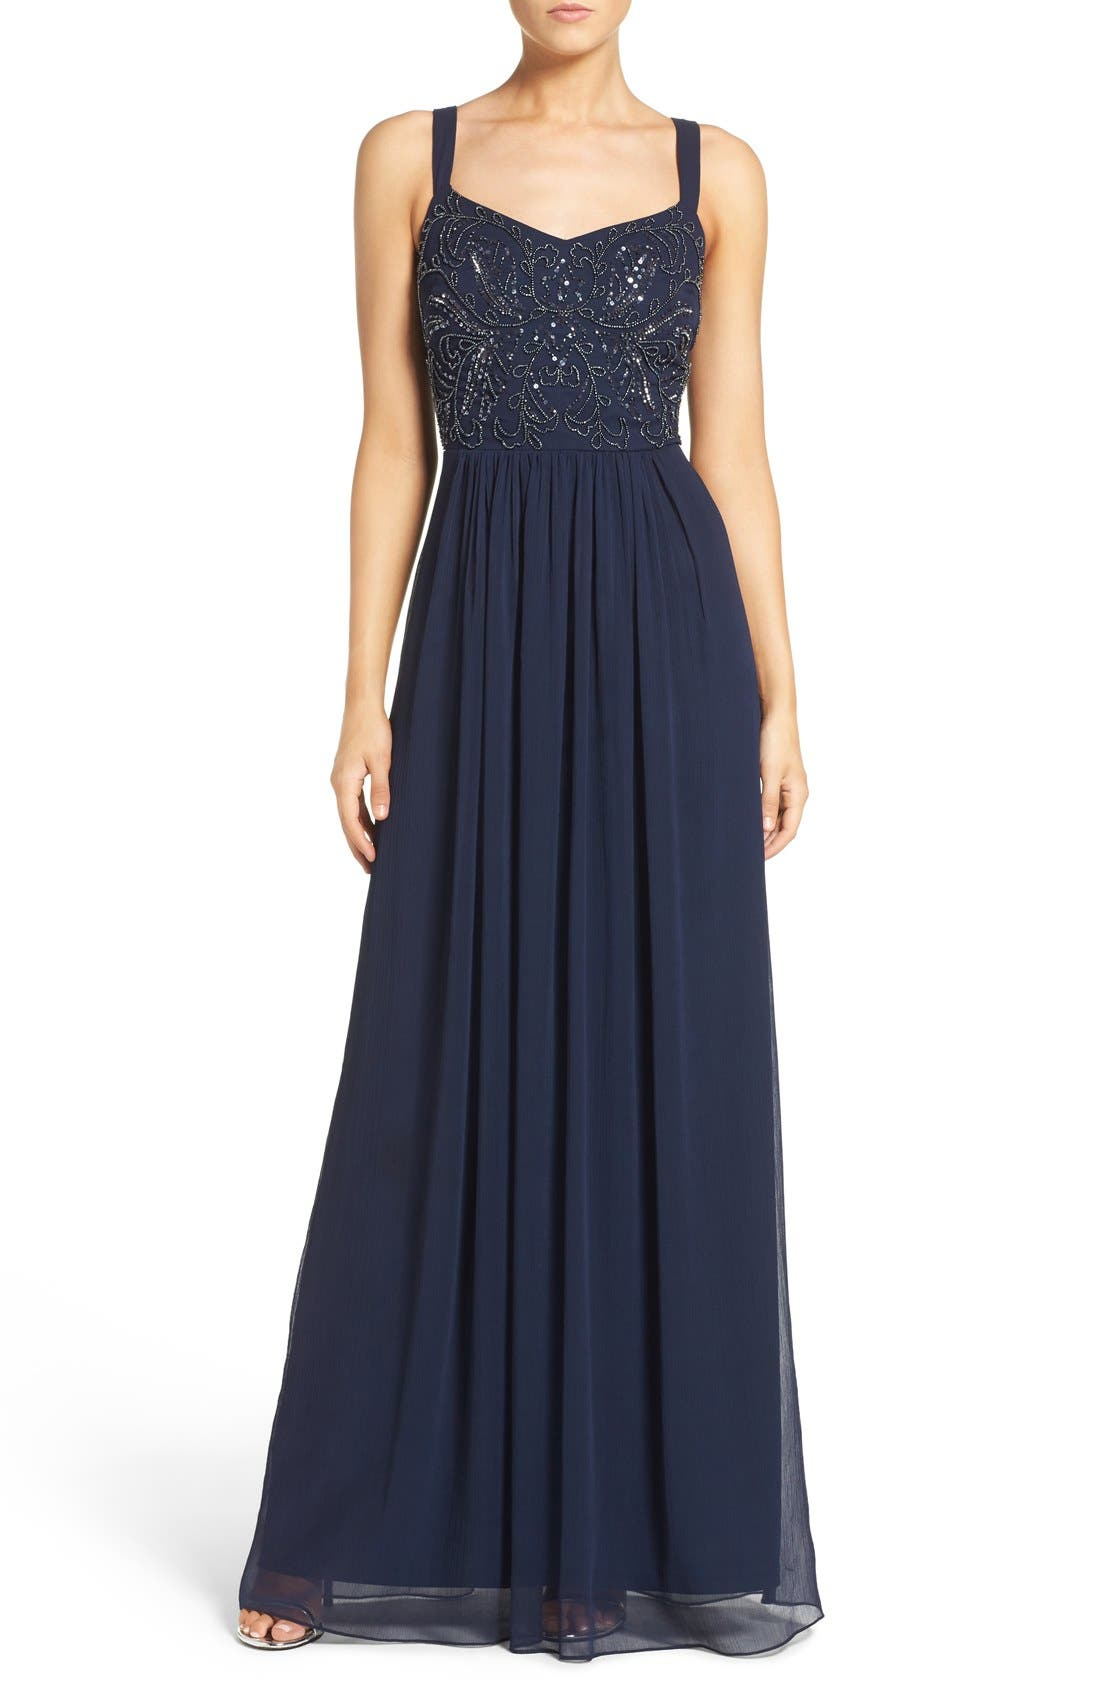 Alternate Image 1 Selected - Adrianna Papell Embellished Bodice Chiffon Gown